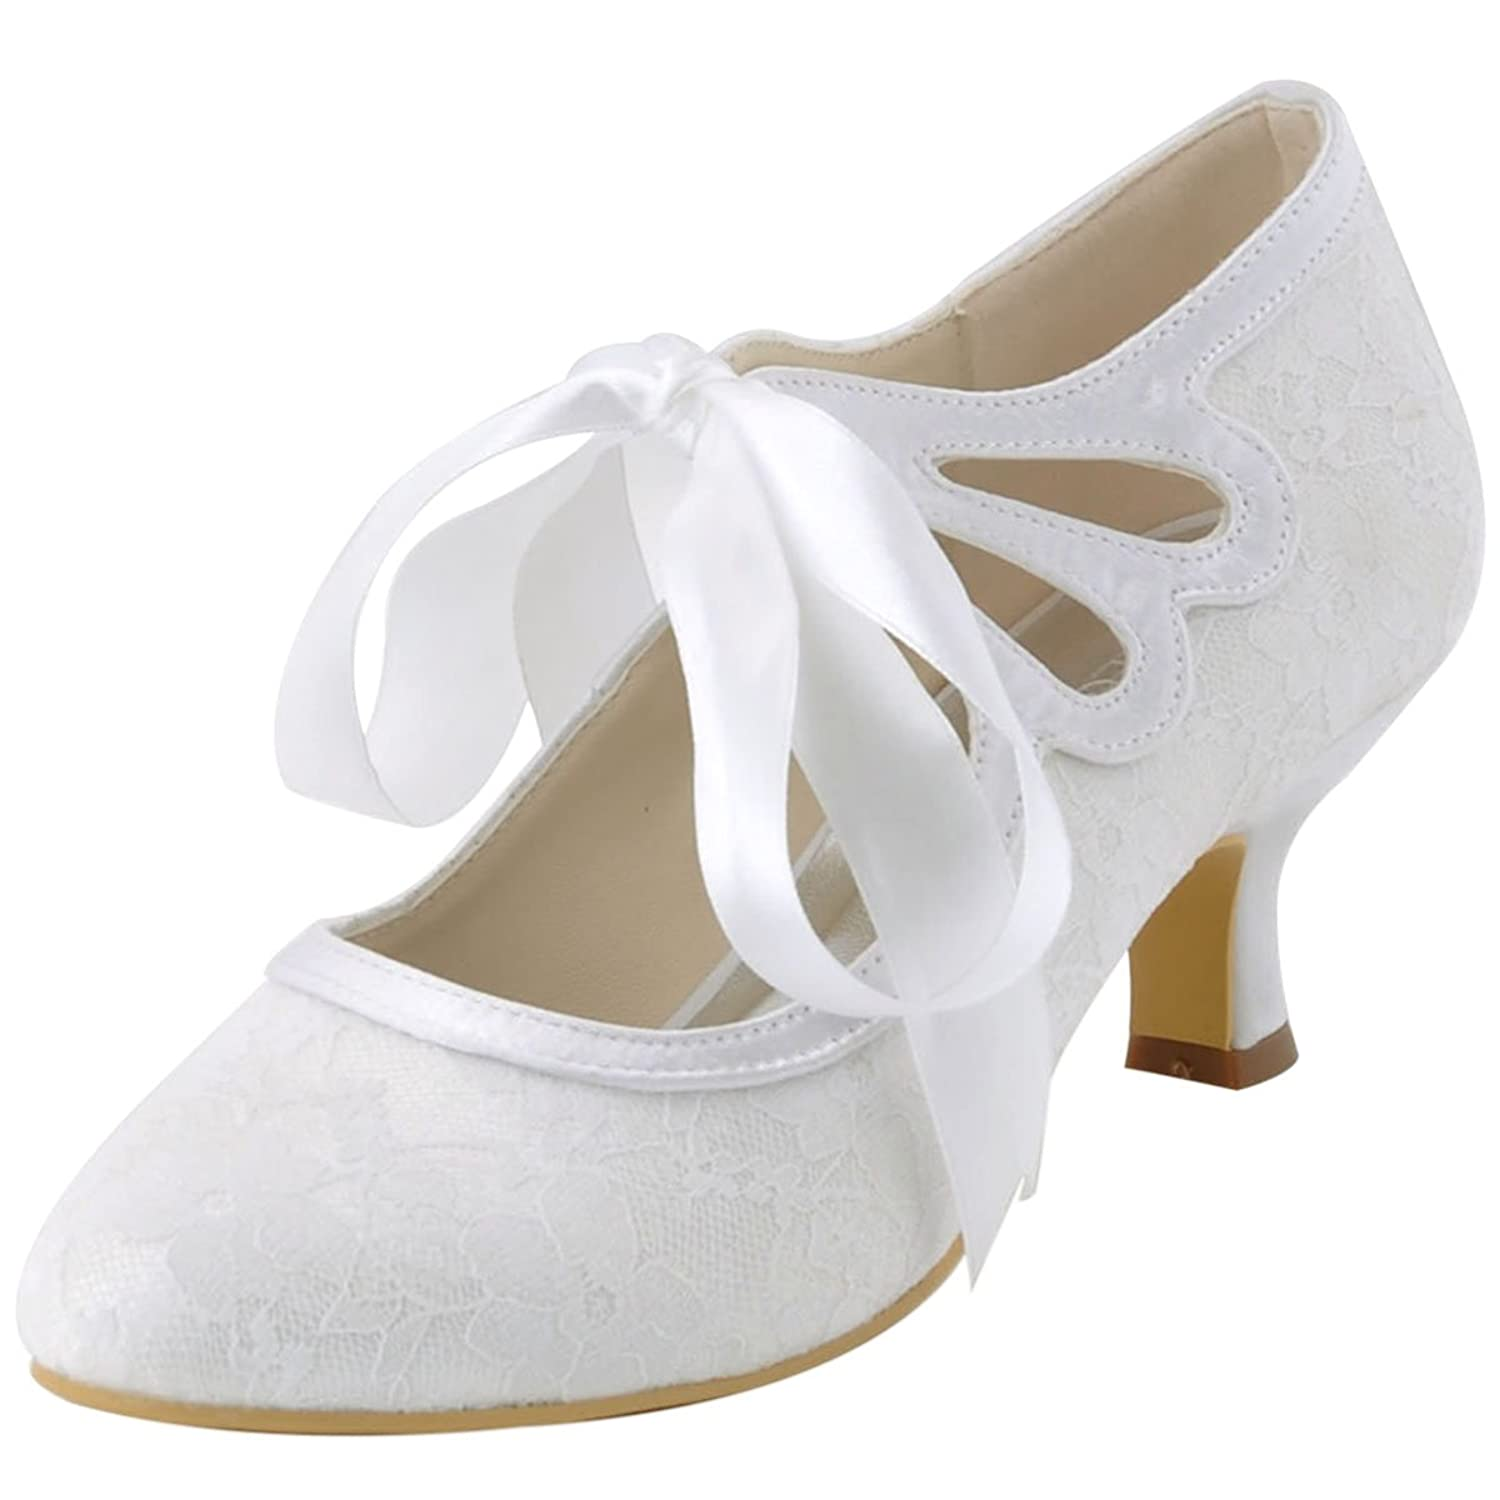 Vintage Inspired Wedding Dress | Vintage Style Wedding Dresses ElegantPark HC1521 Womens Mary Jane Closed Toe Low Heel Pumps Lace Wedding Dress Shoes $48.95 AT vintagedancer.com